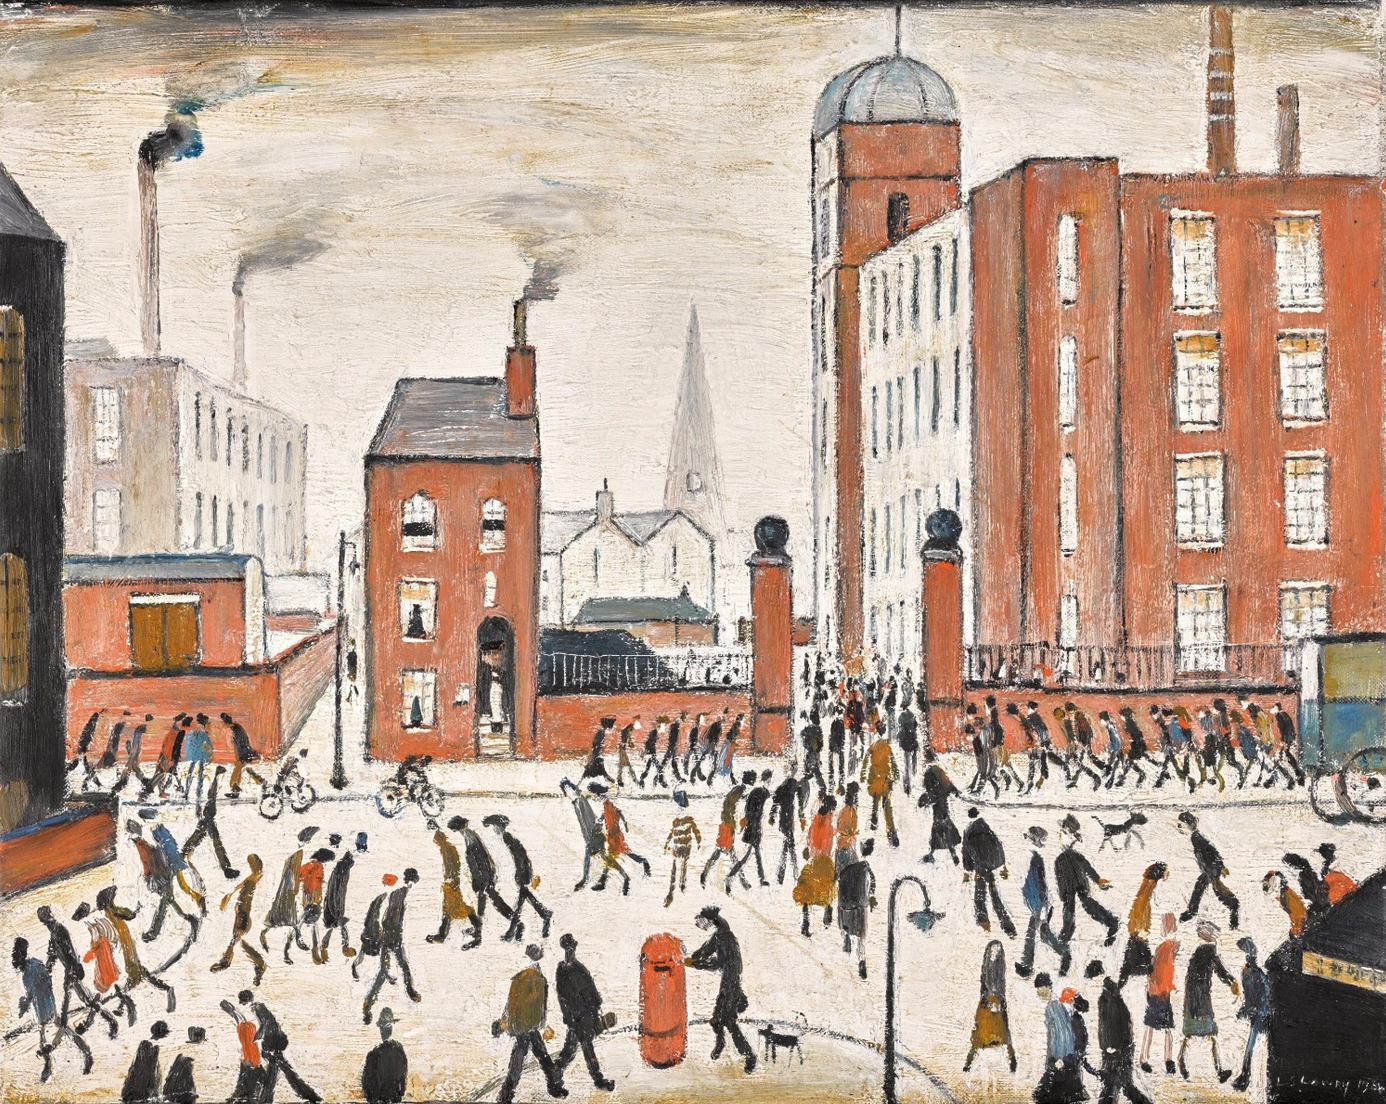 The Rush Hour (1964) by Laurence Stephen Lowry (1887 - 1976), English artist.